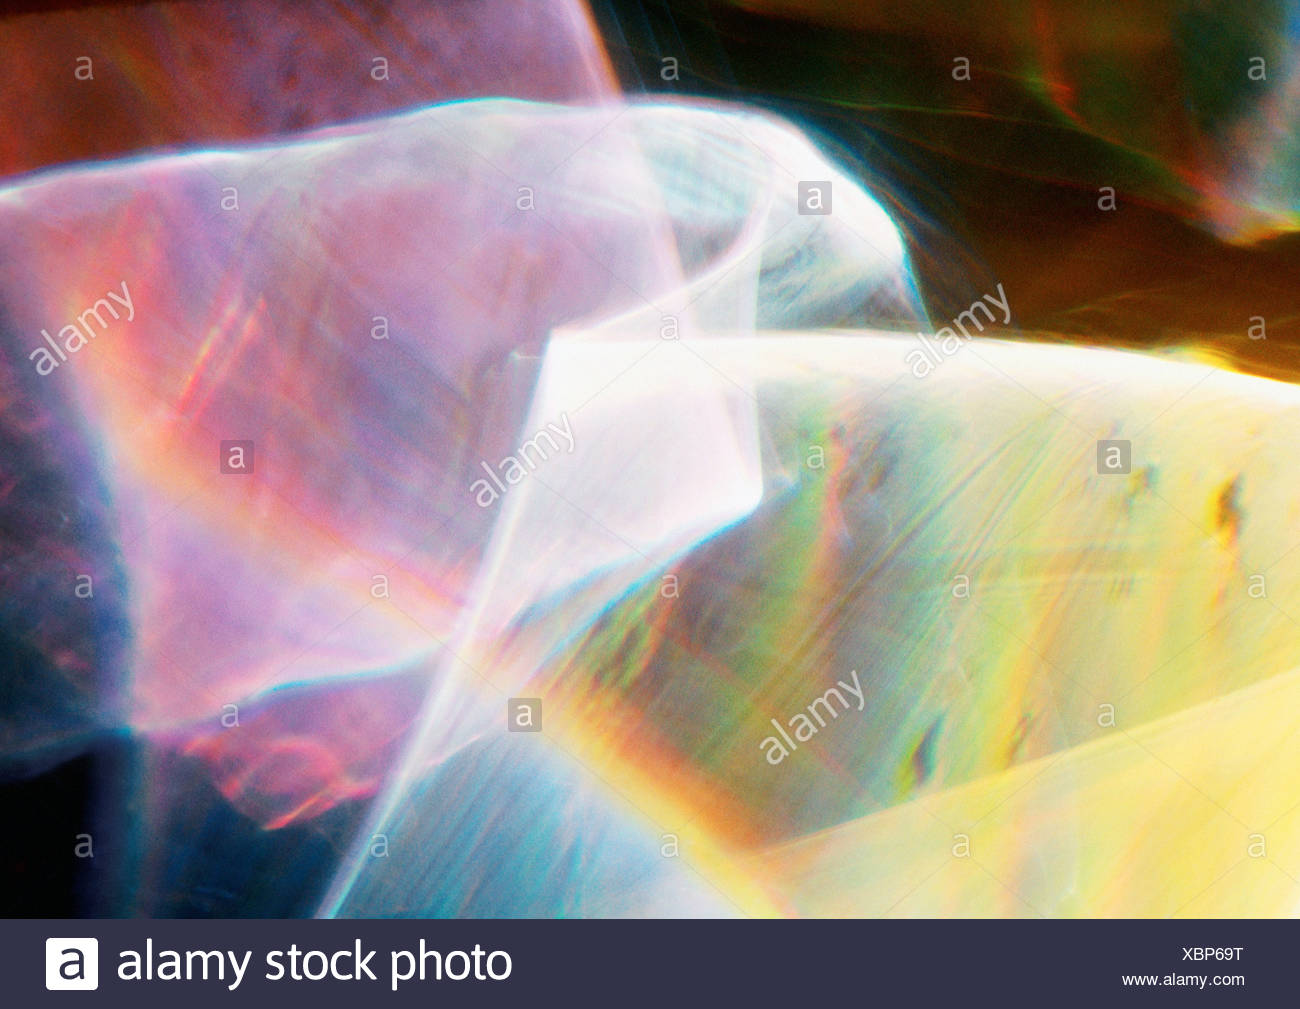 Light effect, pinks and yellows with rainbow effect - Stock Image